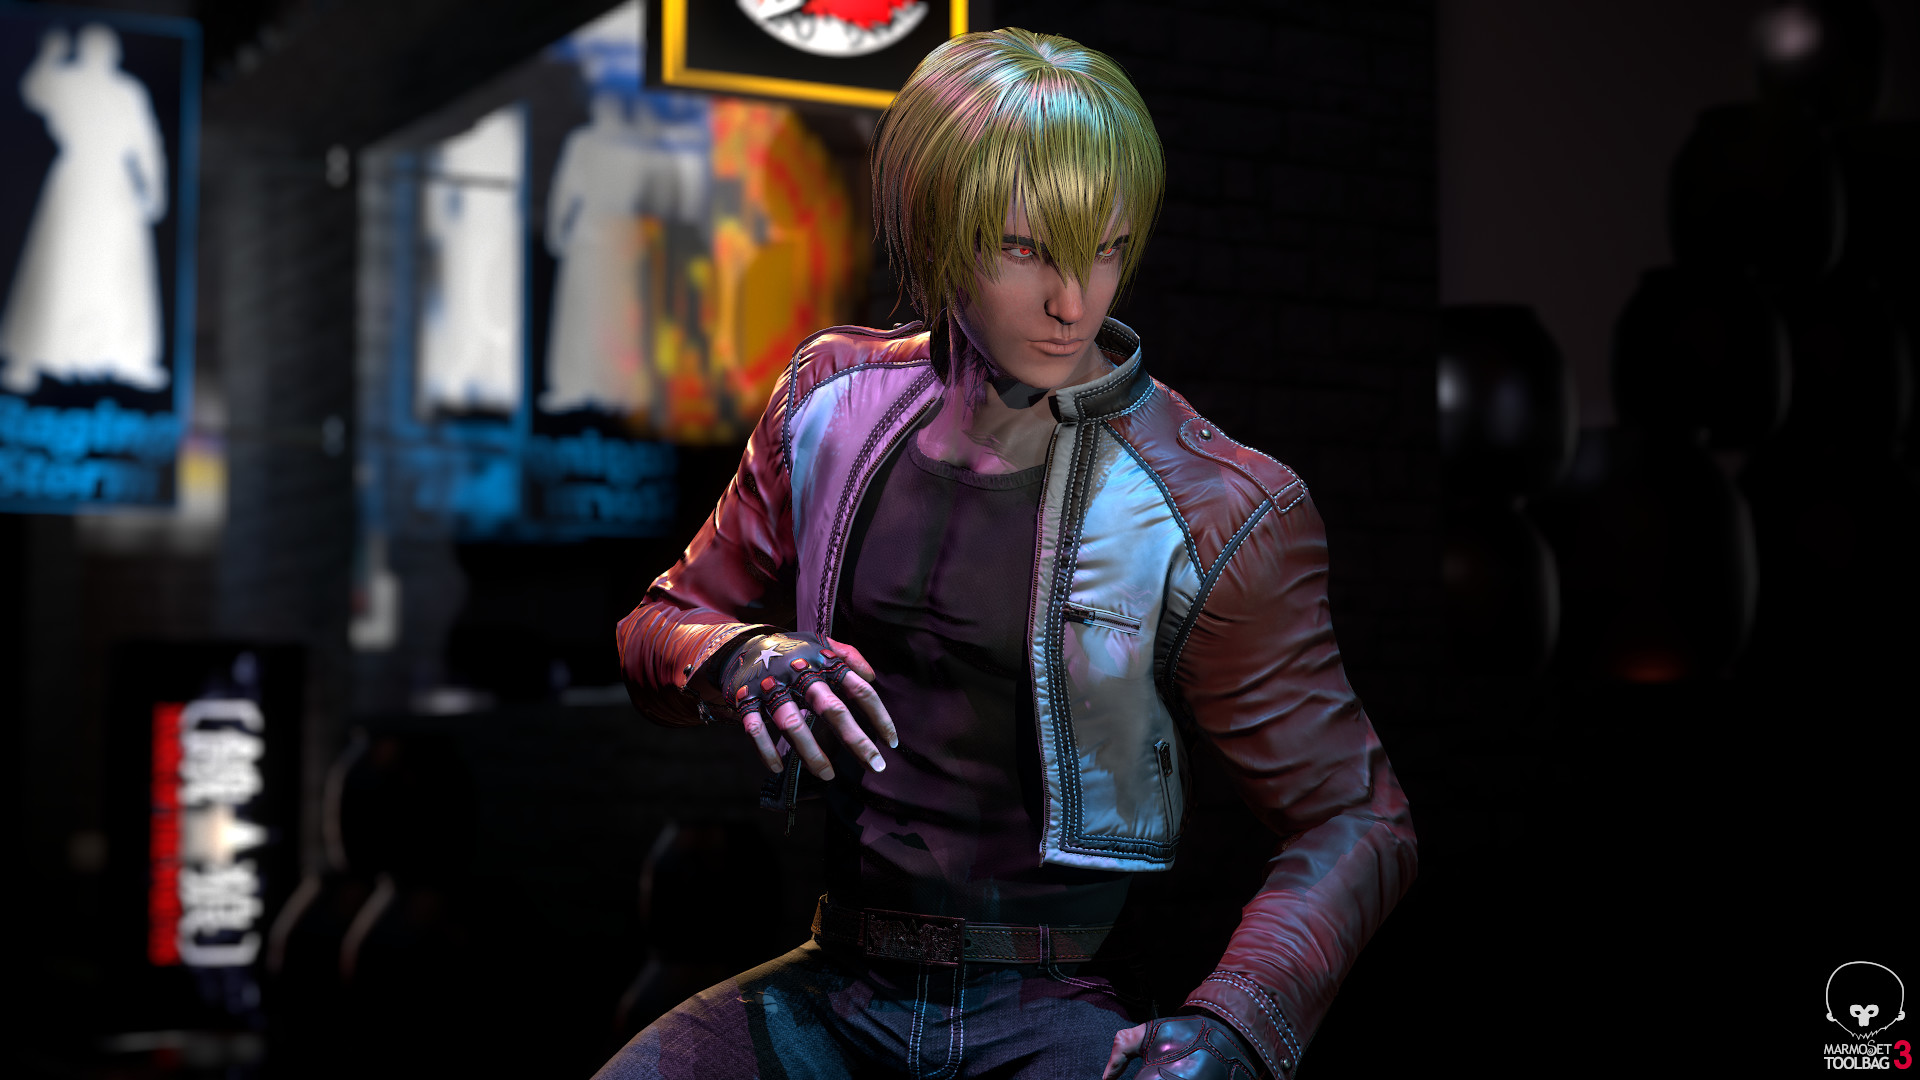 Trevor Lawrence Rock Howard Kof Fan Art This is the deviation folder for rock howard special animations and special costumes, except the kof excella costume. trevor lawrence rock howard kof fan art